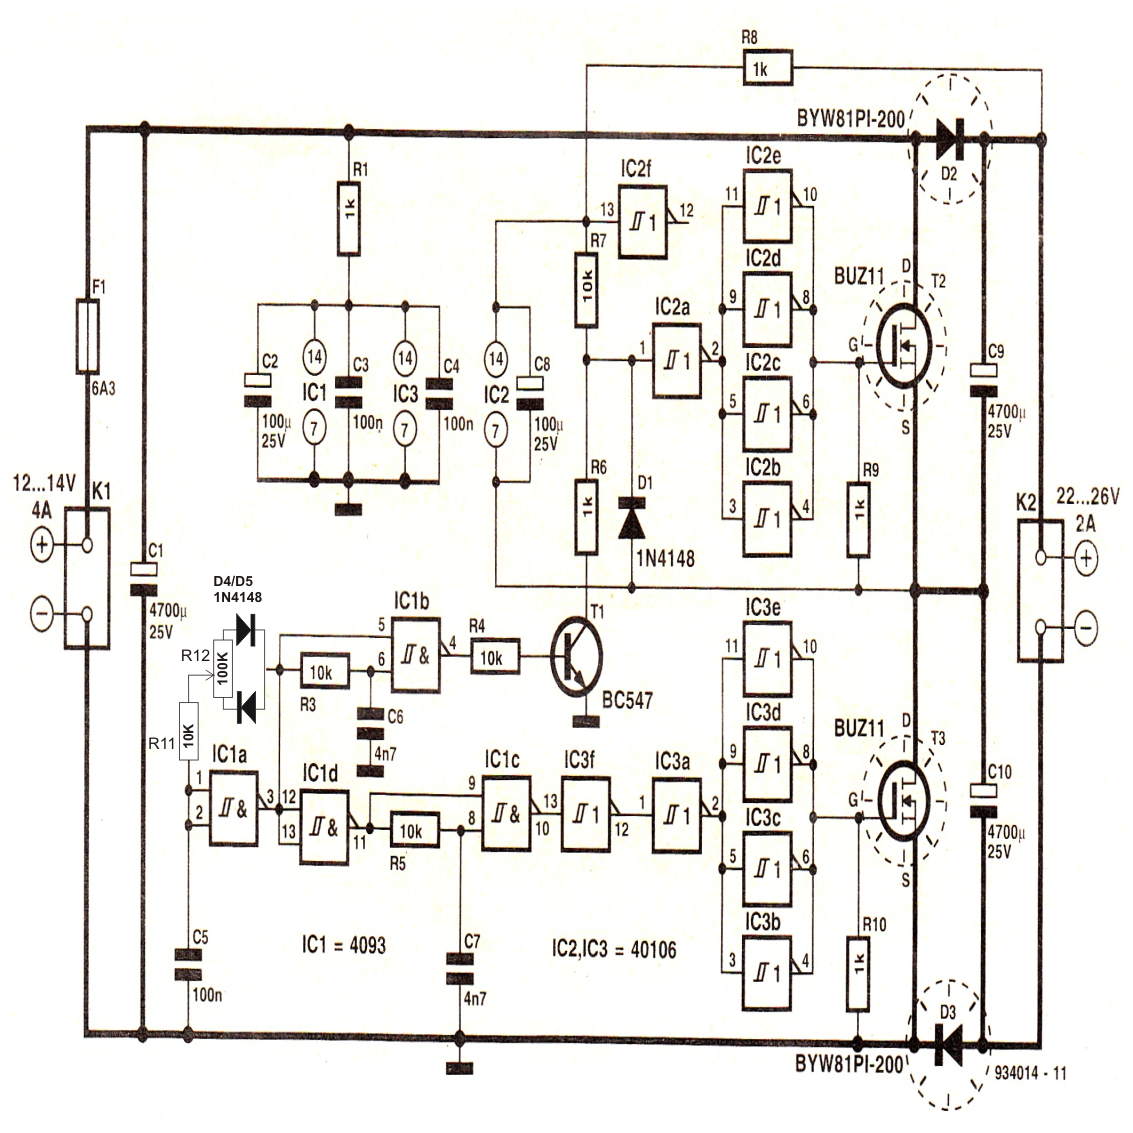 usb hardware diagram free wiring schematic usb pin out